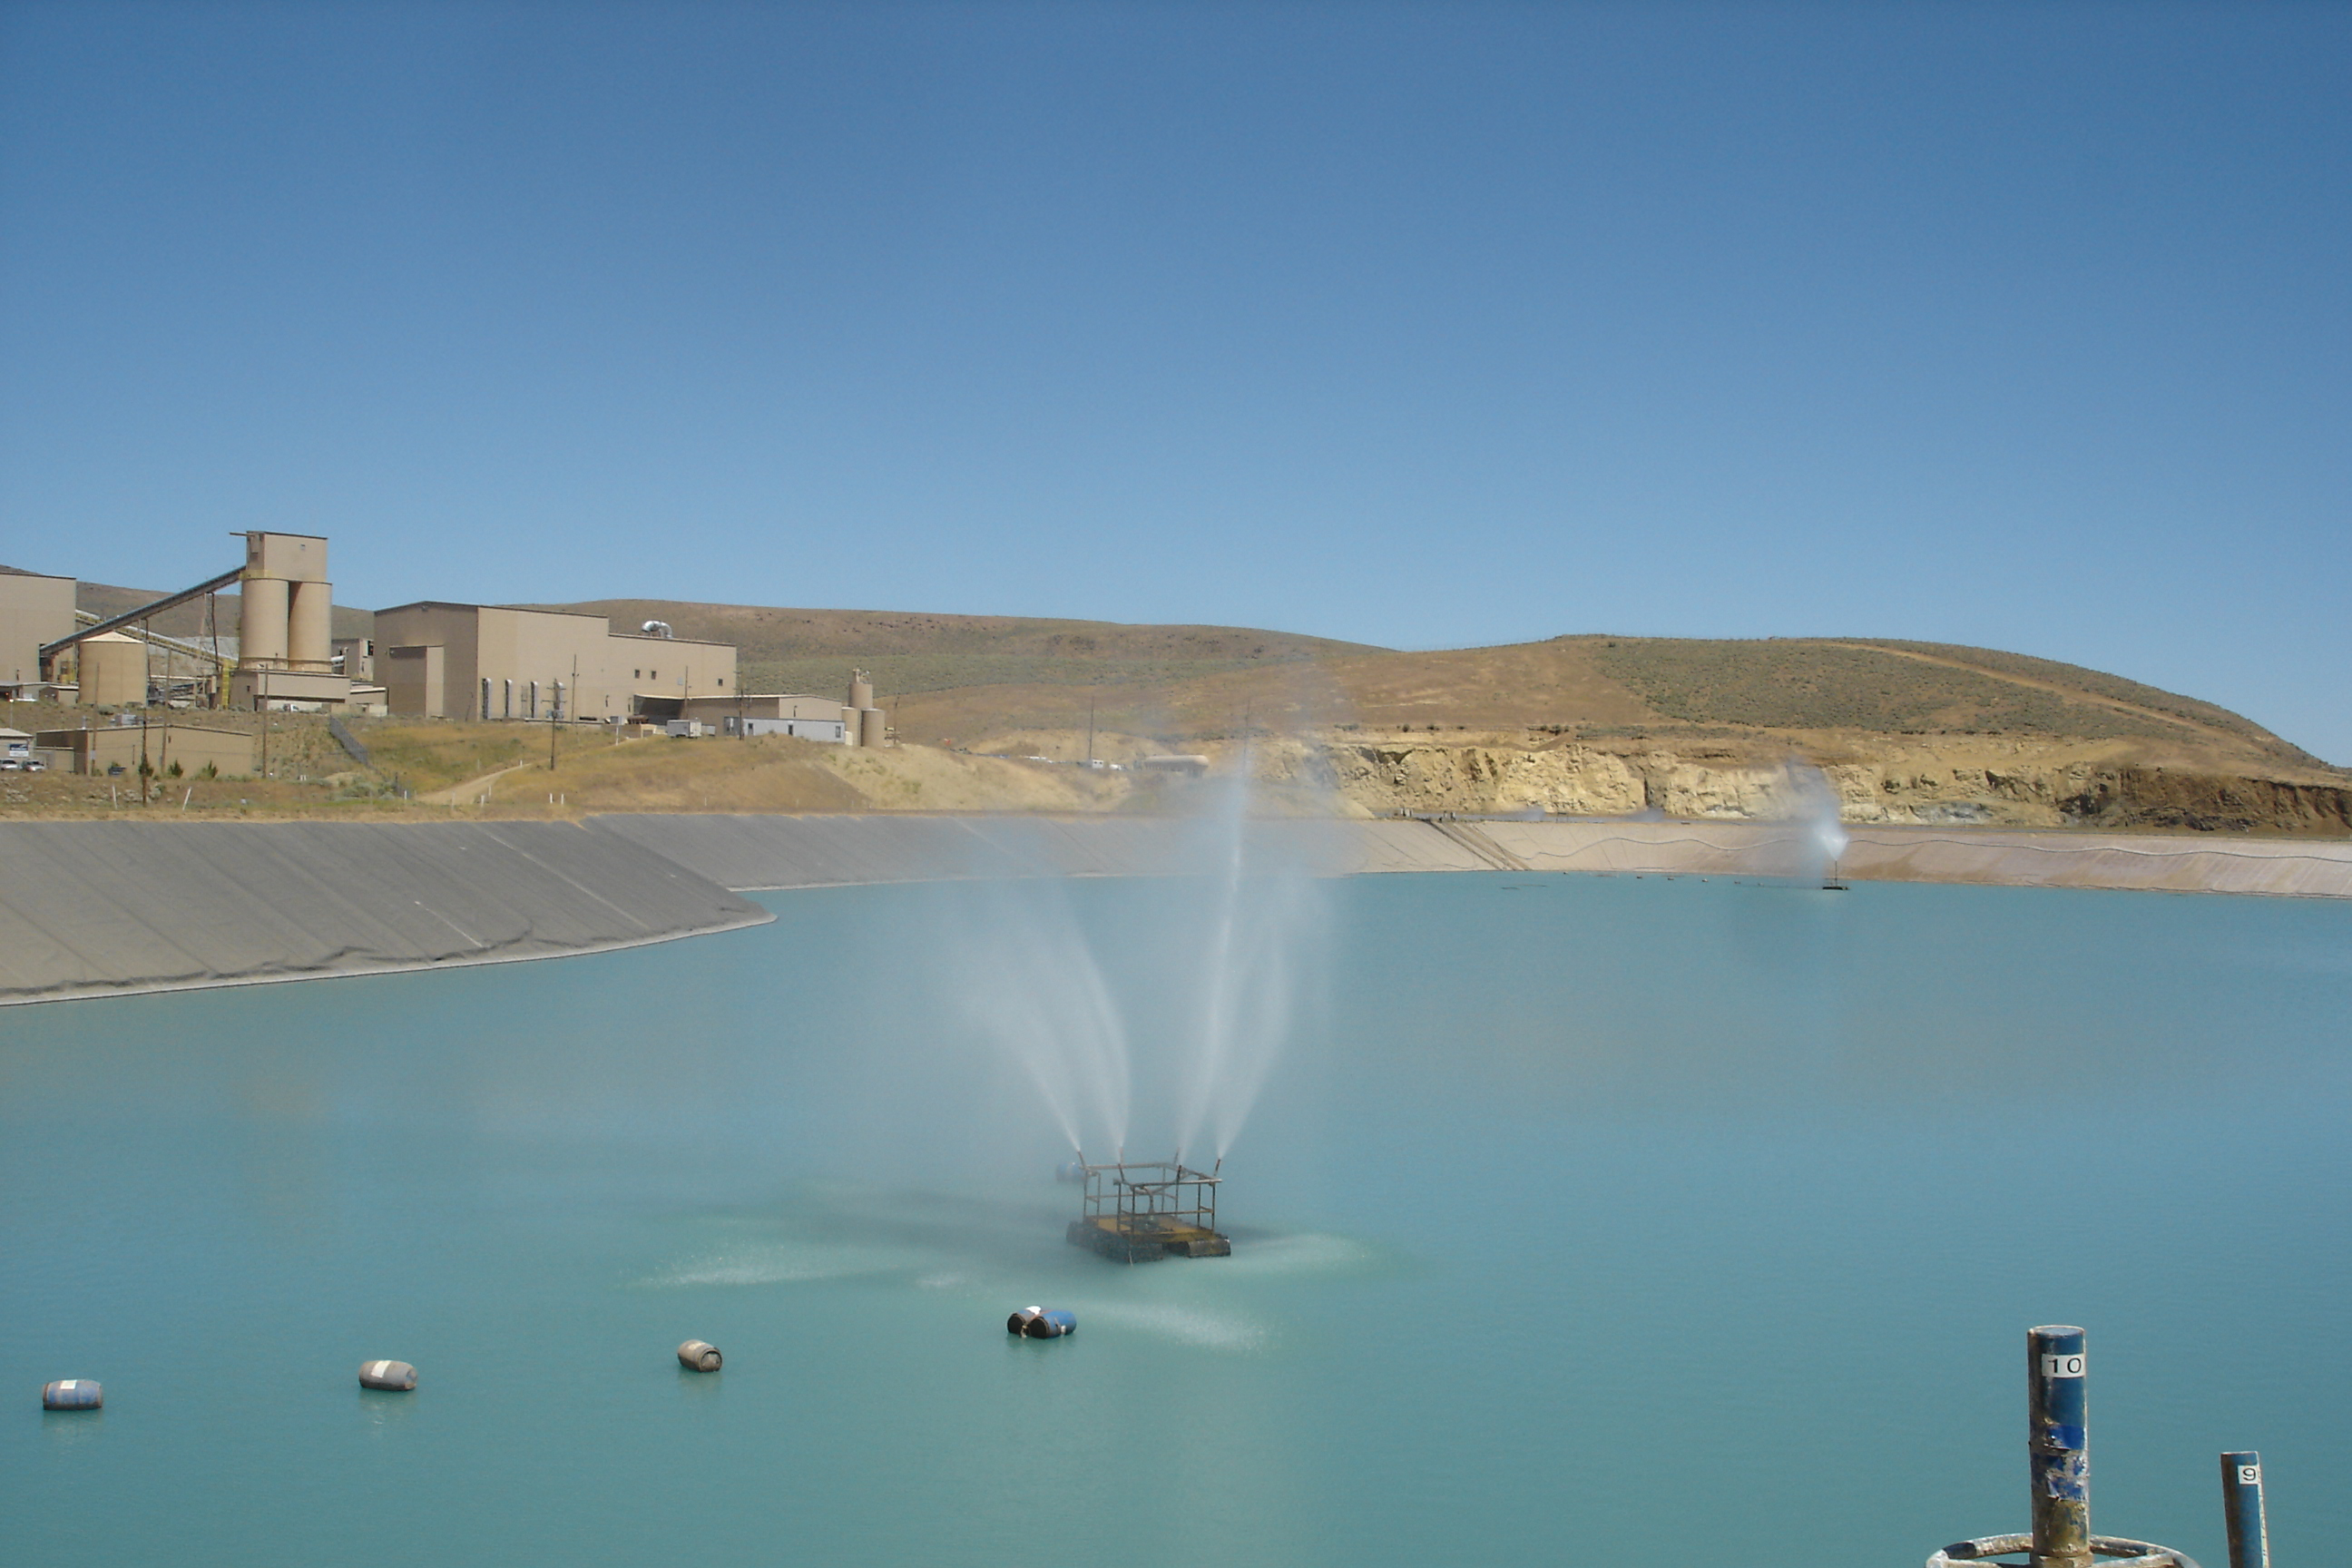 Tailings impoundment with evaporation sprinklers in operation.